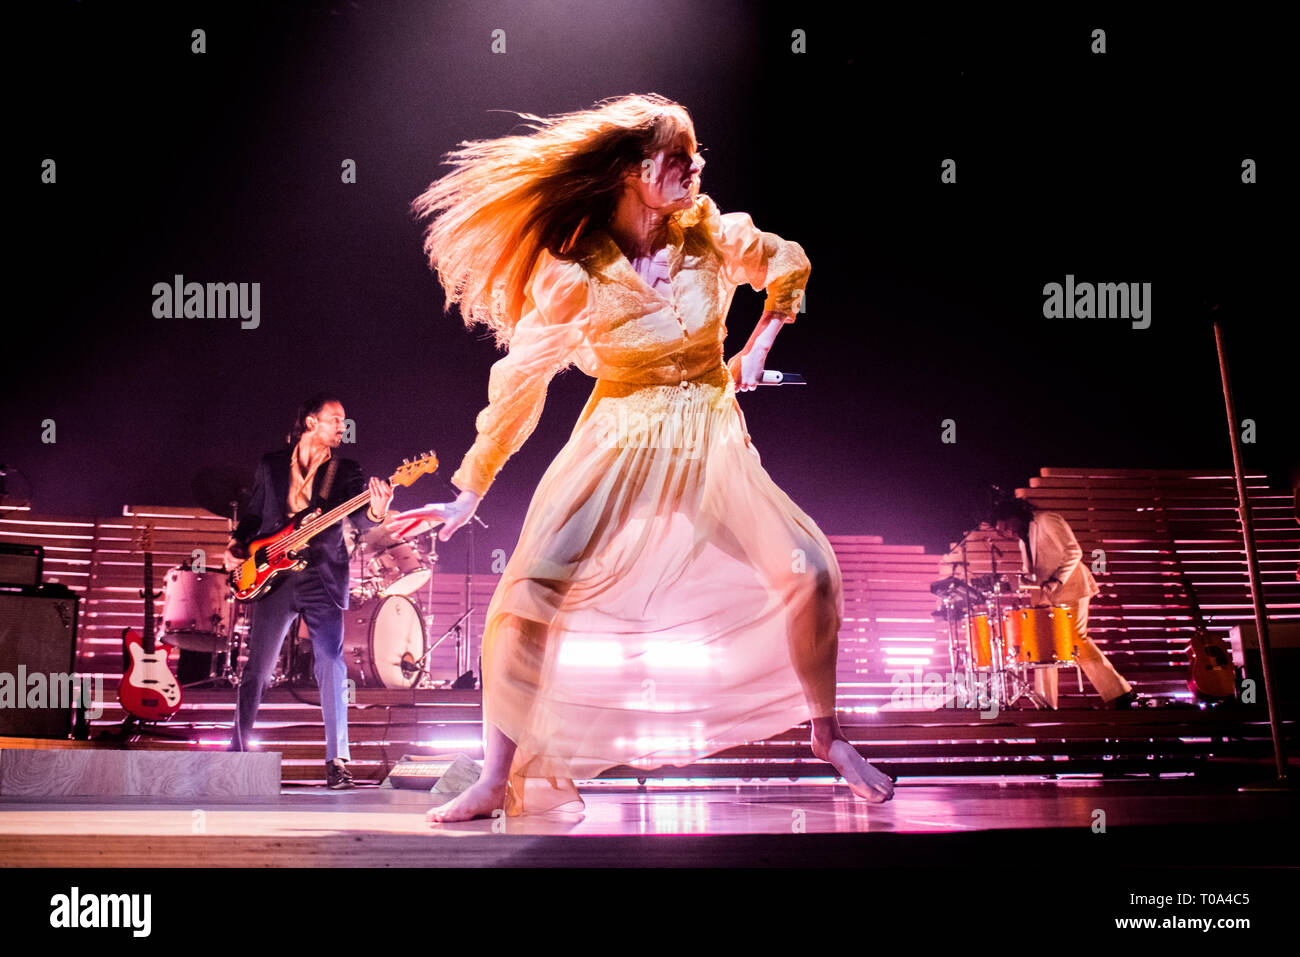 Torino, Italy. 18th Mar, 2019. The English musician, singer, songwriter, and producer Florence Leontine Mary Welch, better know simply as Florence Welch or Florence and the Machine, performing live on stage for her 'High As Hope' tour concert in Torino, at the Pala Alpitour Credit: Alessandro Bosio/Alamy Live News - Stock Image